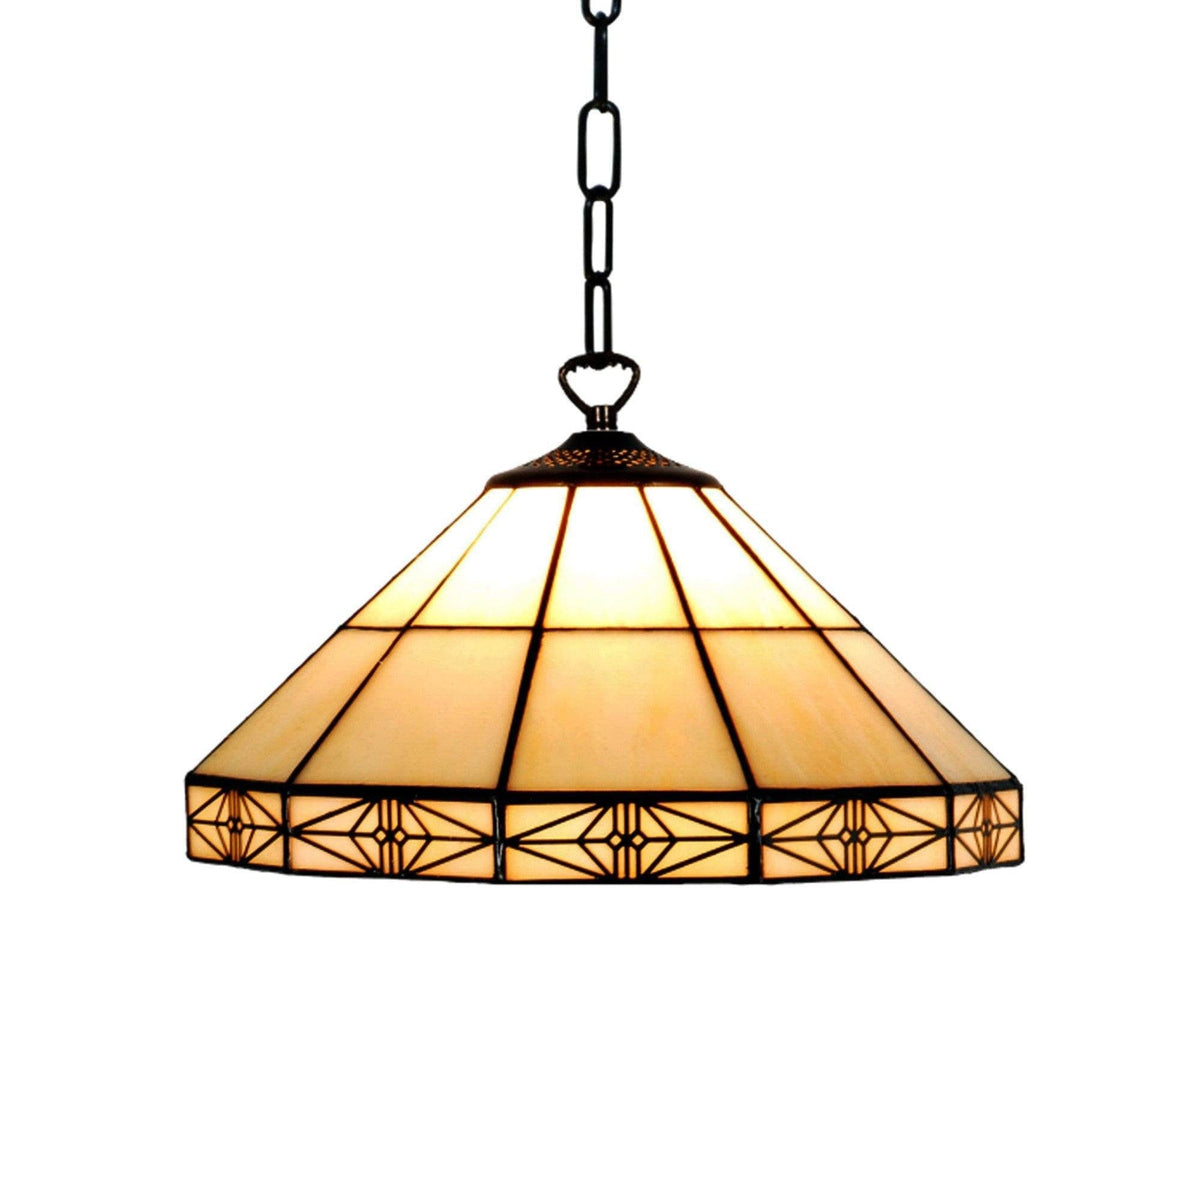 Tiffany Ceiling Pendant Lights - Dorchester Tiffany Ceiling Light,Single Bulb Fitting